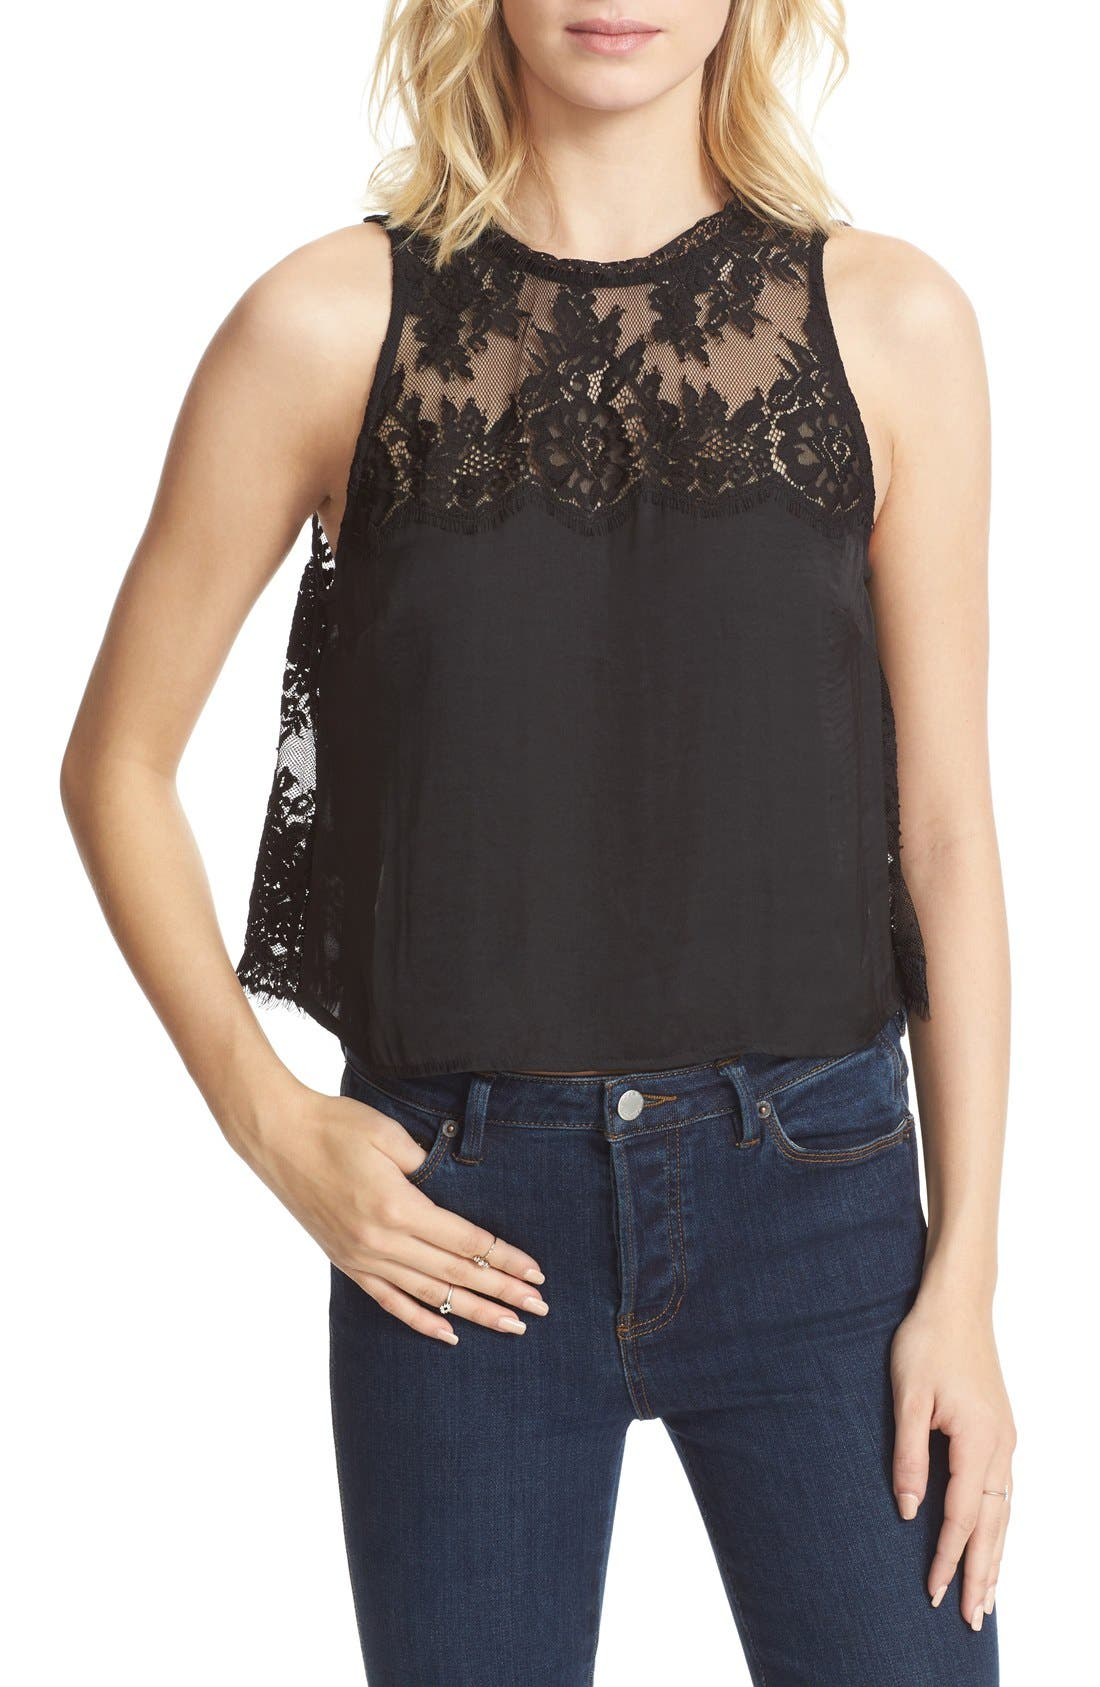 FREE PEOPLE, Tied to You Camisole, Alternate thumbnail 3, color, 001